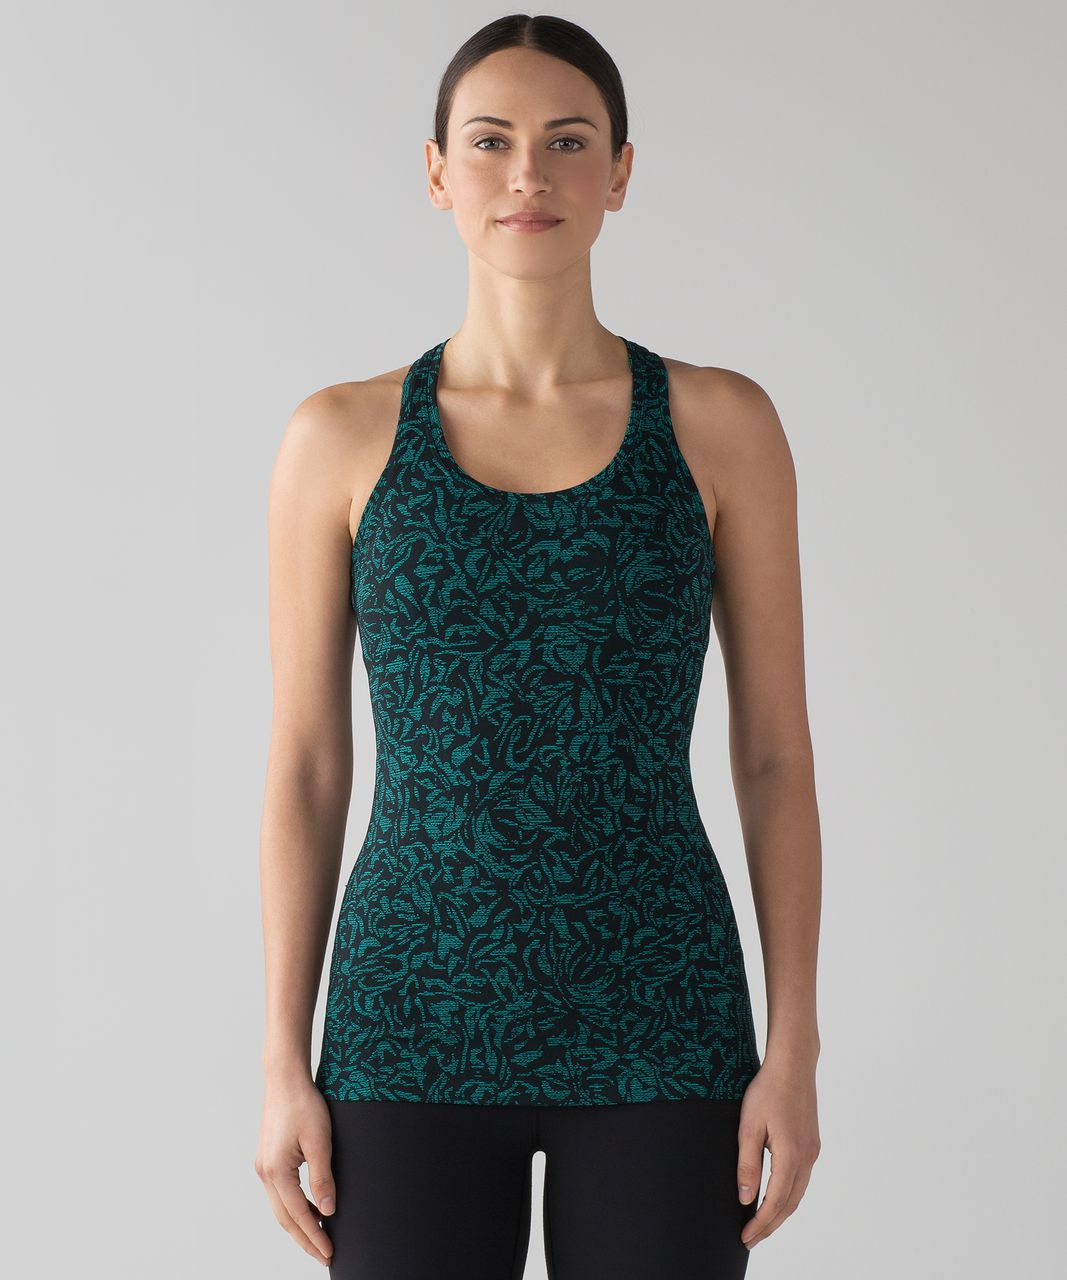 Lululemon Cool Racerback II - Thrive Viridian Green Black